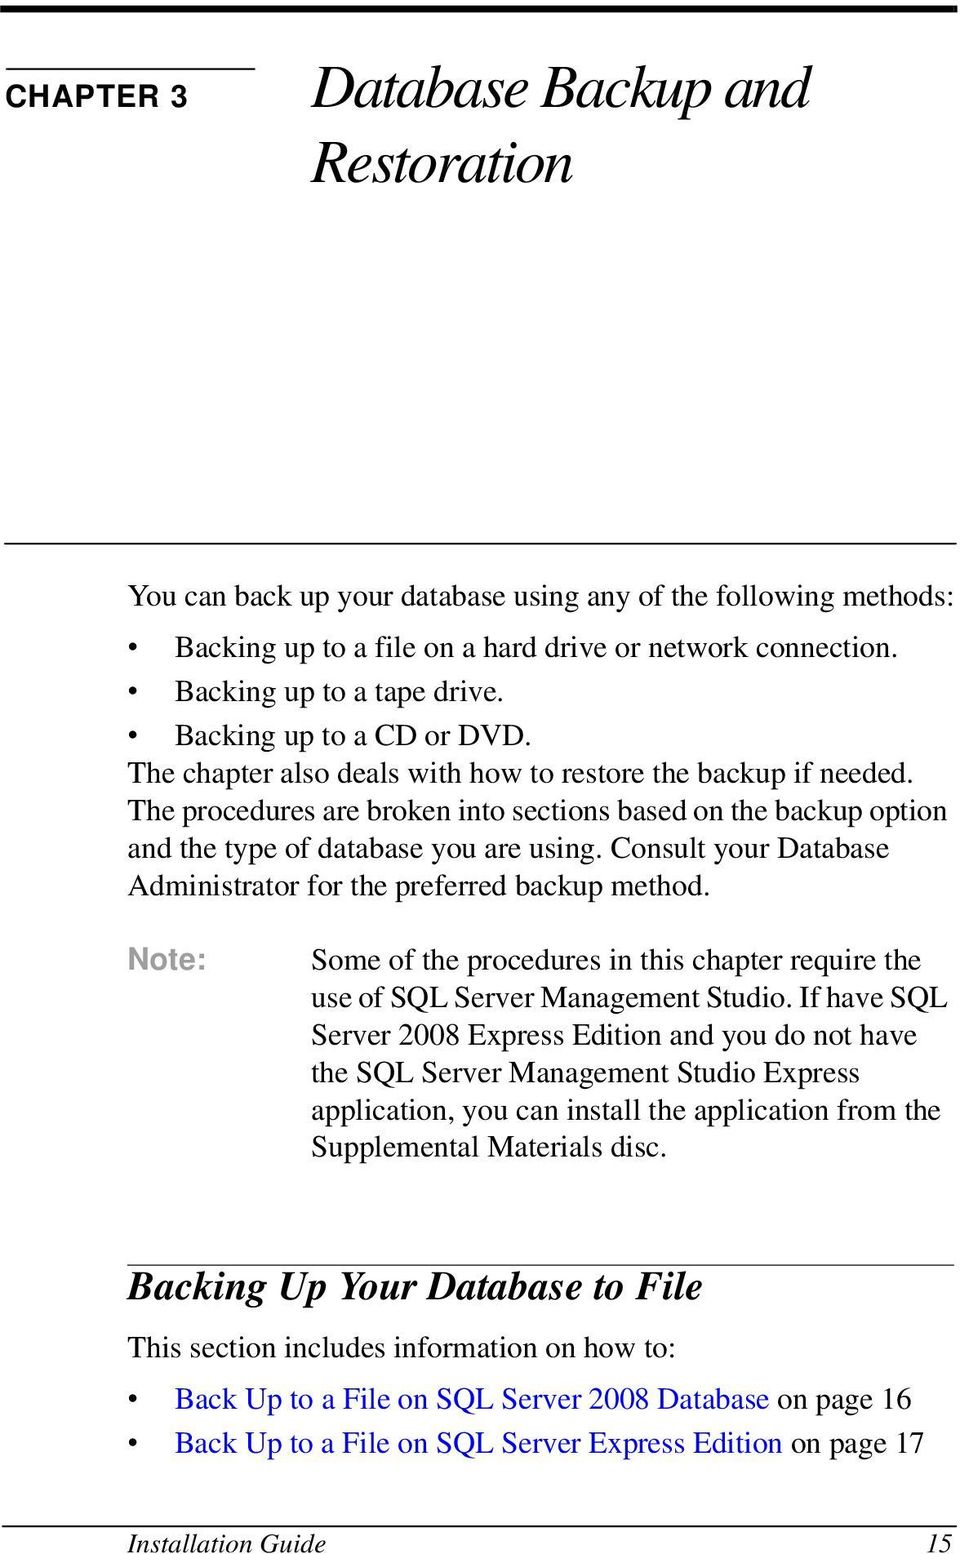 Consult your Database Administrator for the preferred backup method. Note: Some of the procedures in this chapter require the use of SQL Server Management Studio.